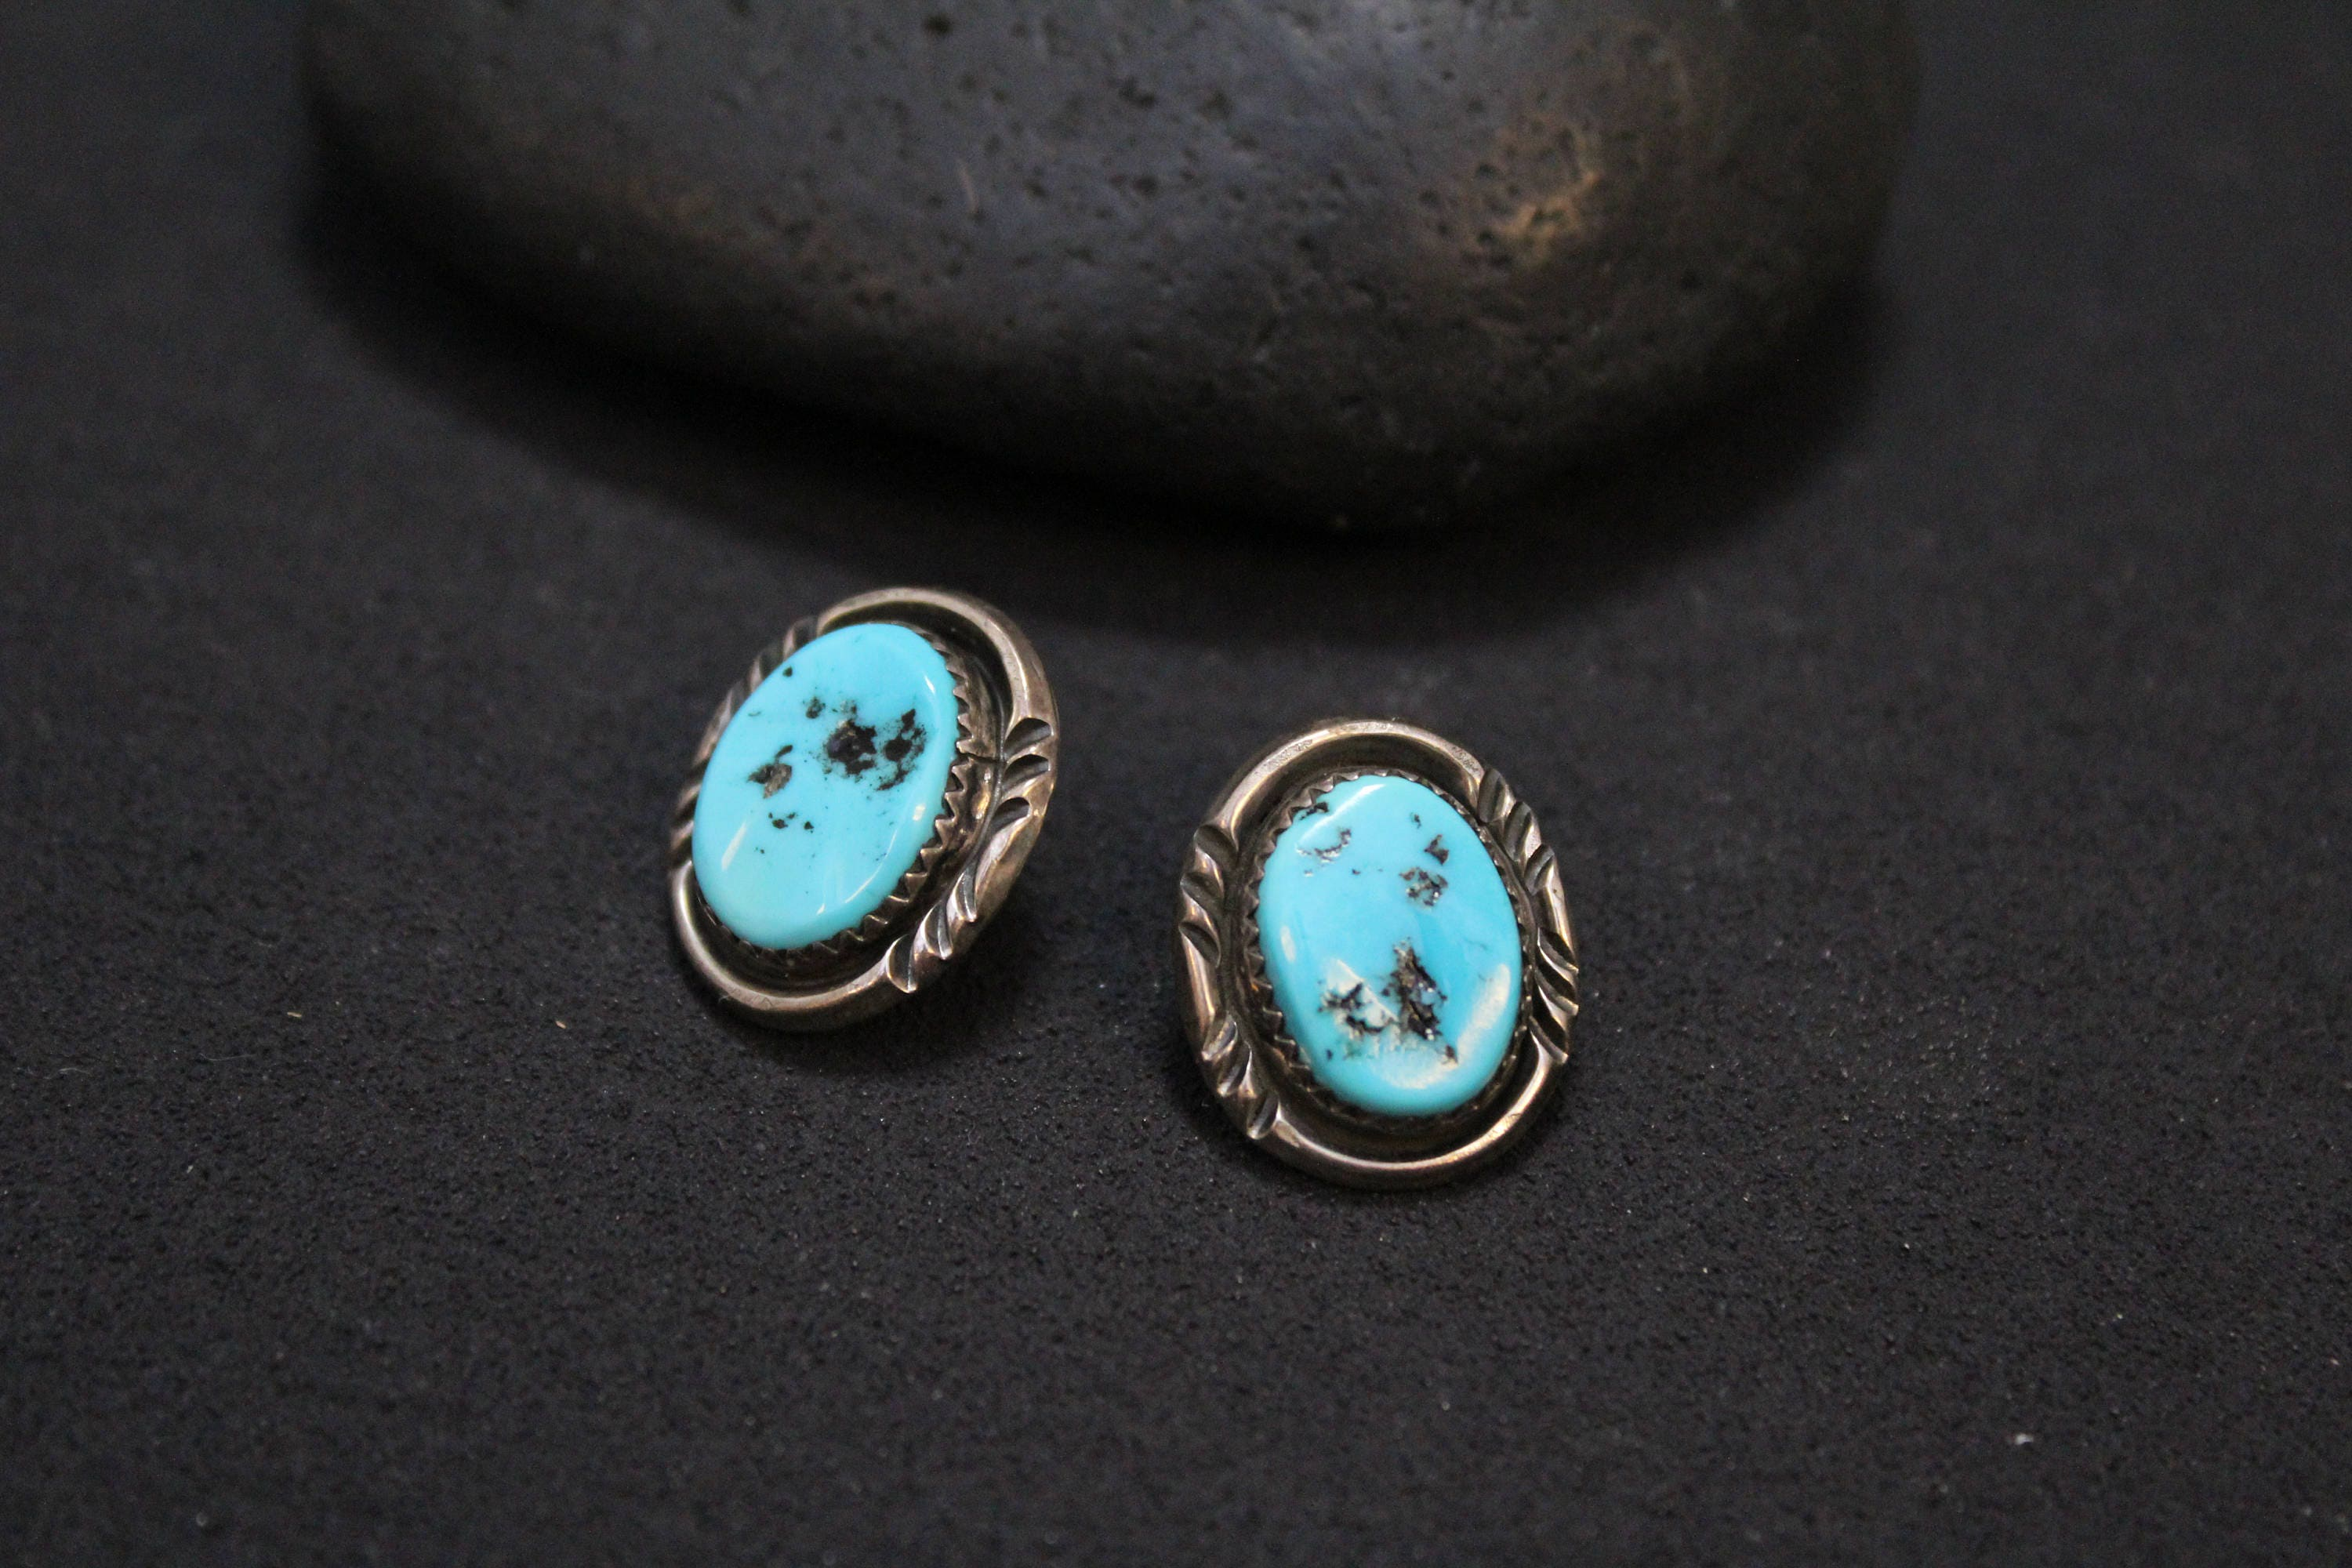 oliver jewellery turquoise ayona bonas earrings silver stud bar